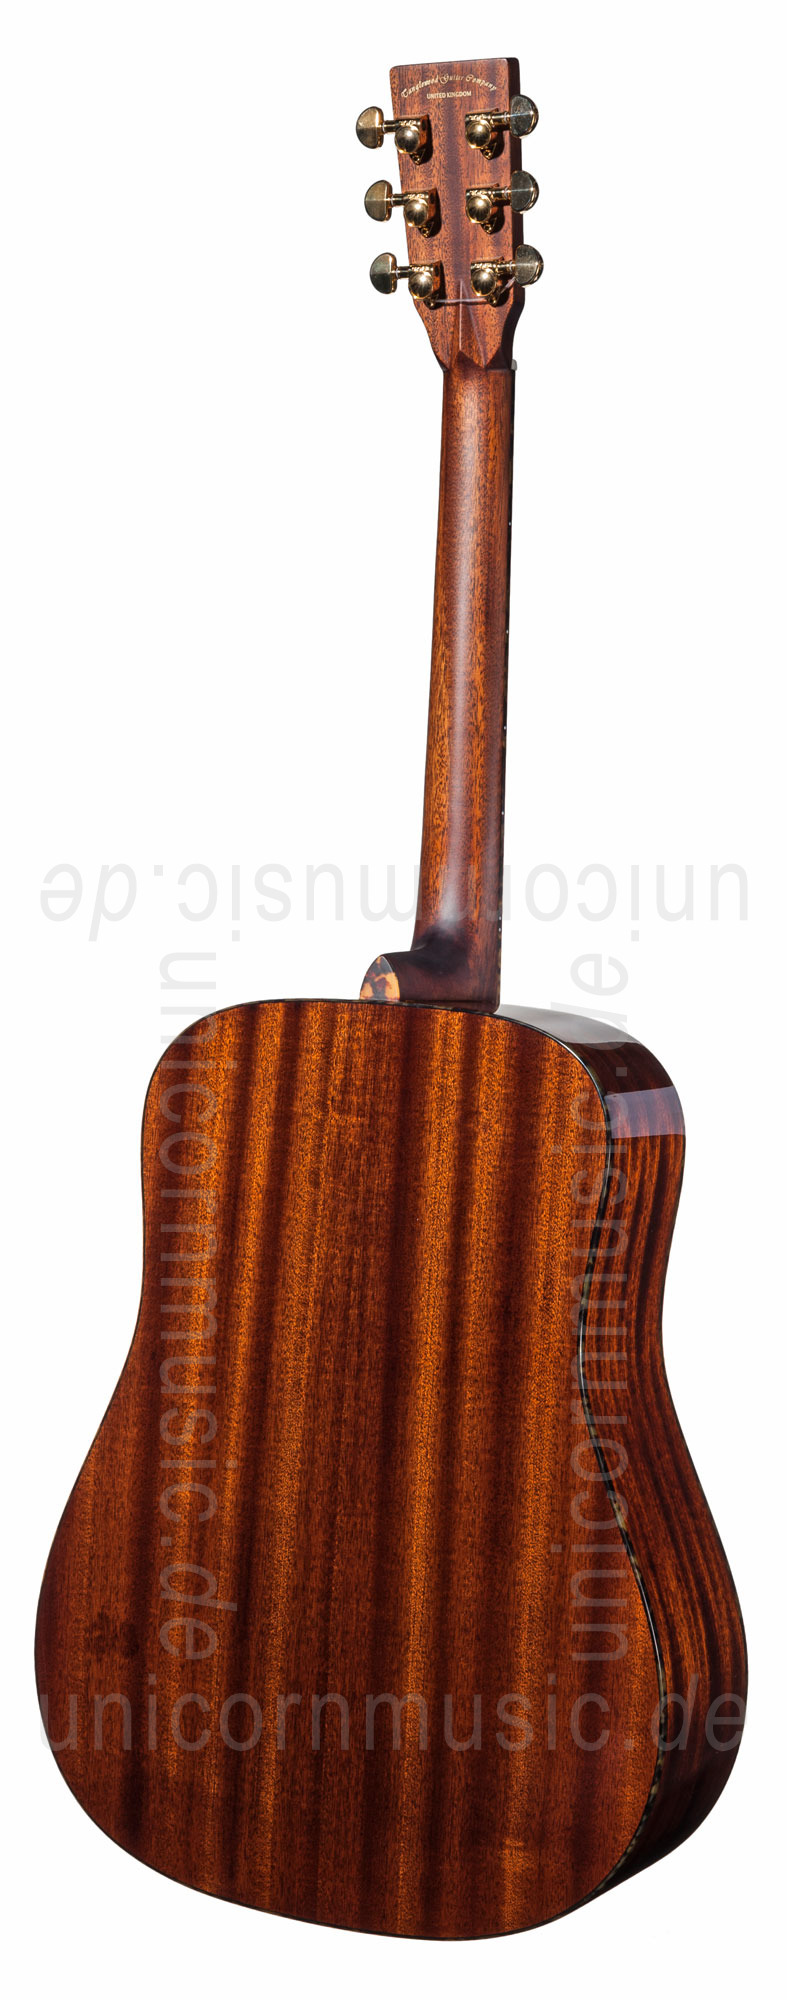 to article description / price Acoustic Guitar TANGLEWOOD TW15/ASM NAT  - Sundance Series - Mahagoni - Dreadnought - all solid